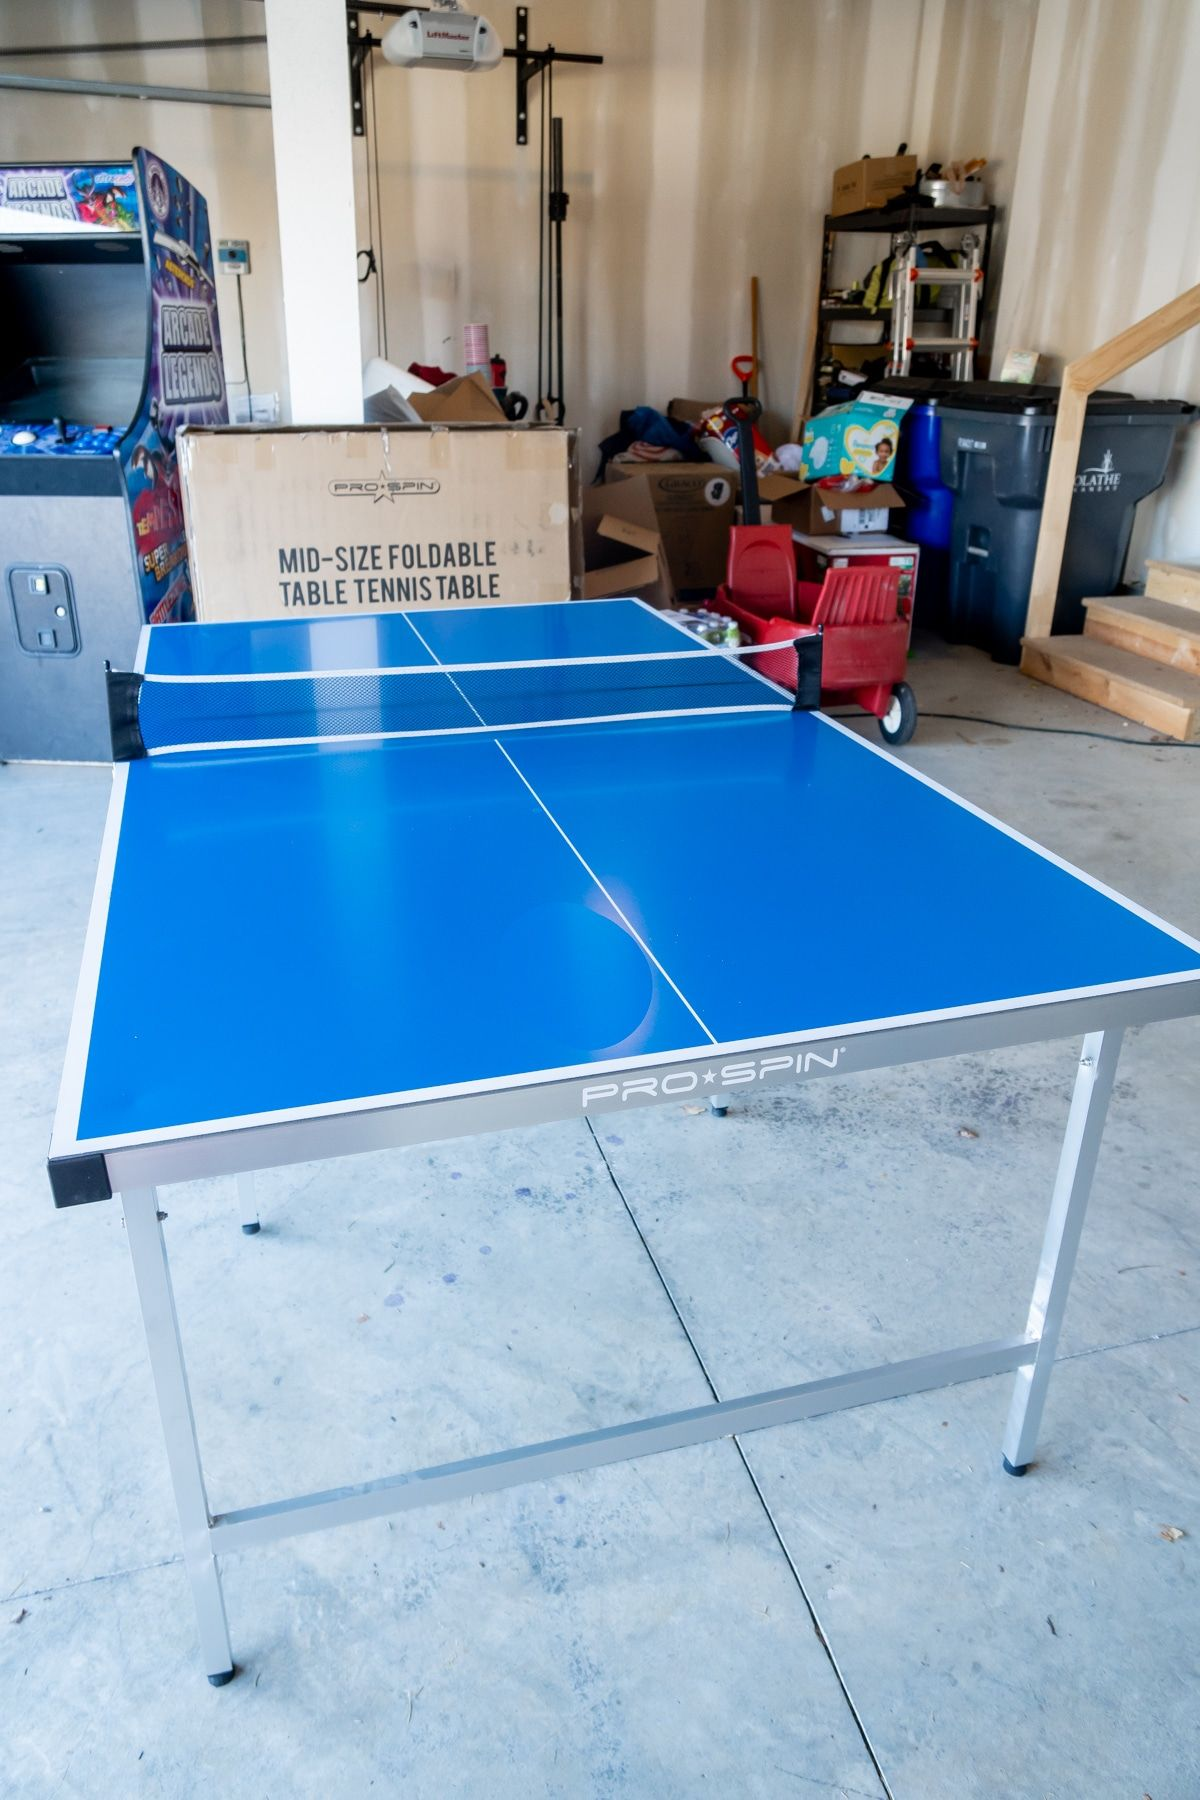 Table de ping-pong pliable Pro-Spin dans un garage